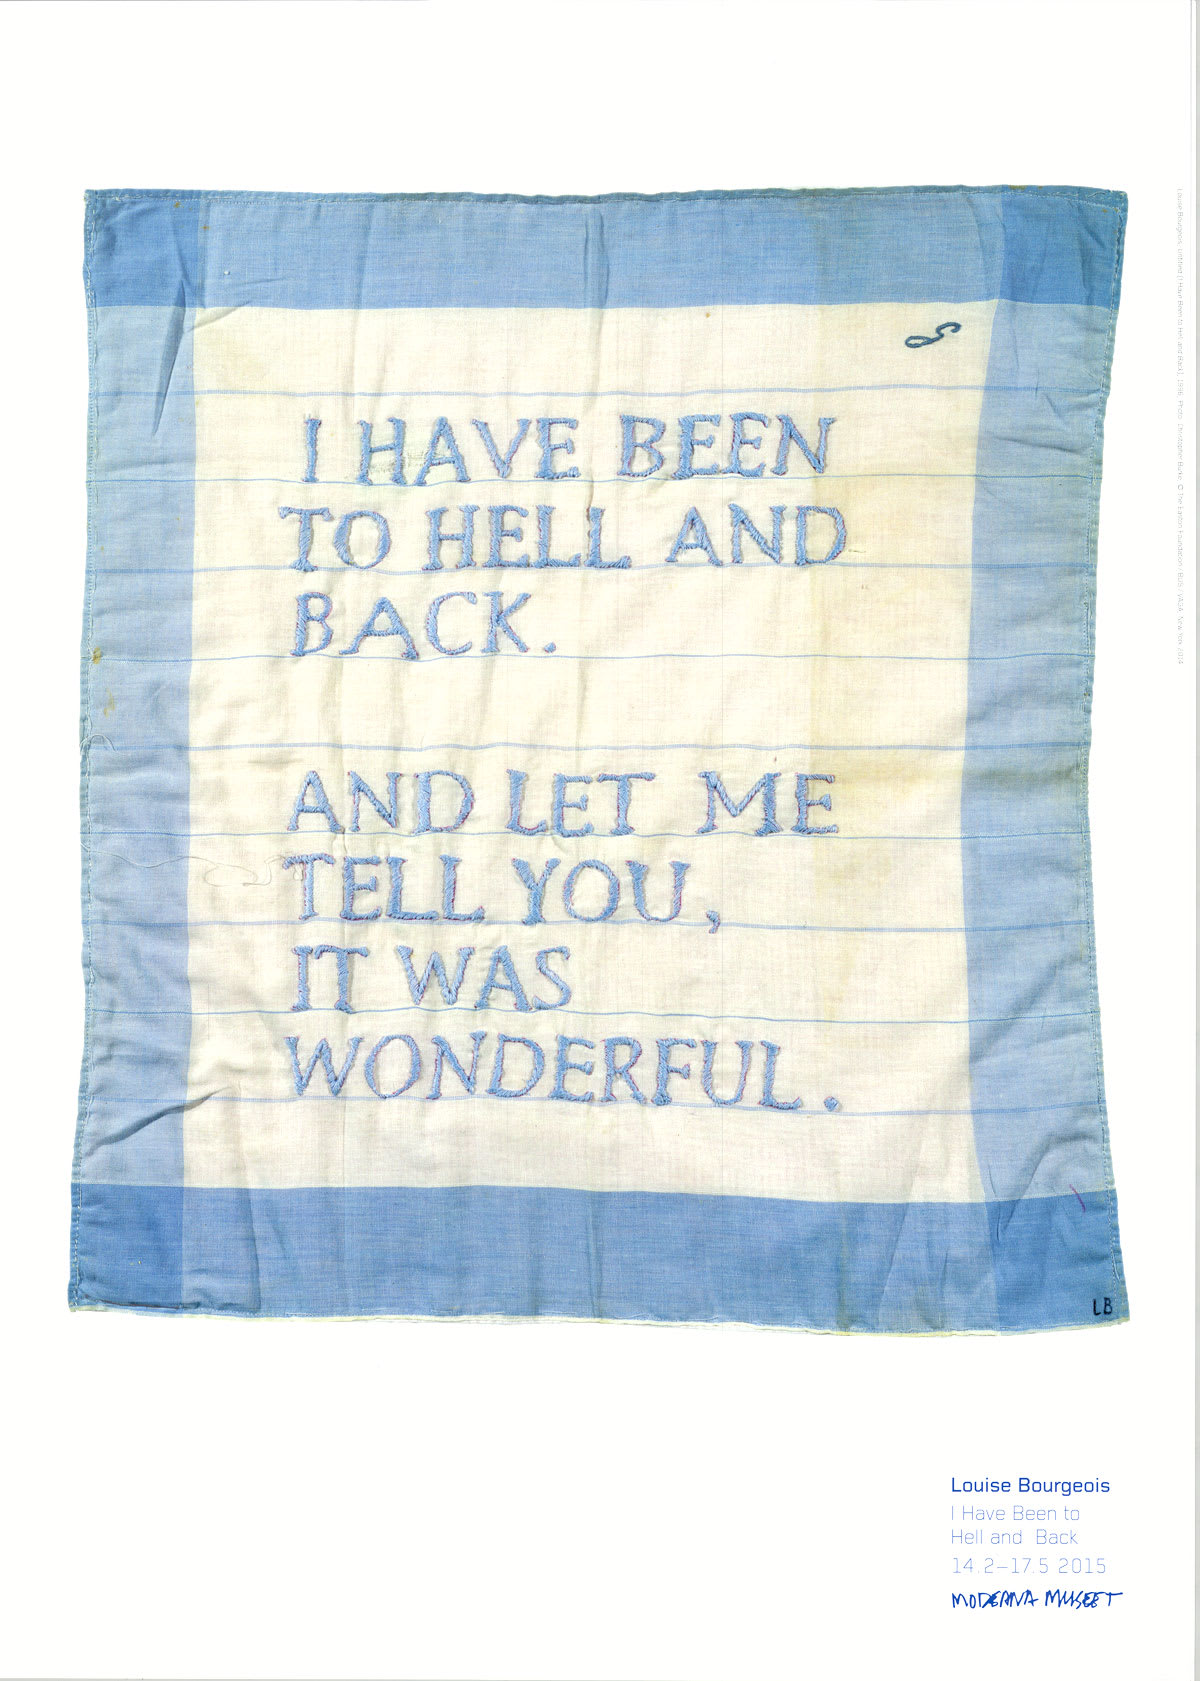 Louise Bourgeois Untitled (I Have Been to Hell and Back), 2014 Poster 19 3/4 x 27 1/2 in 50 x 70 cm